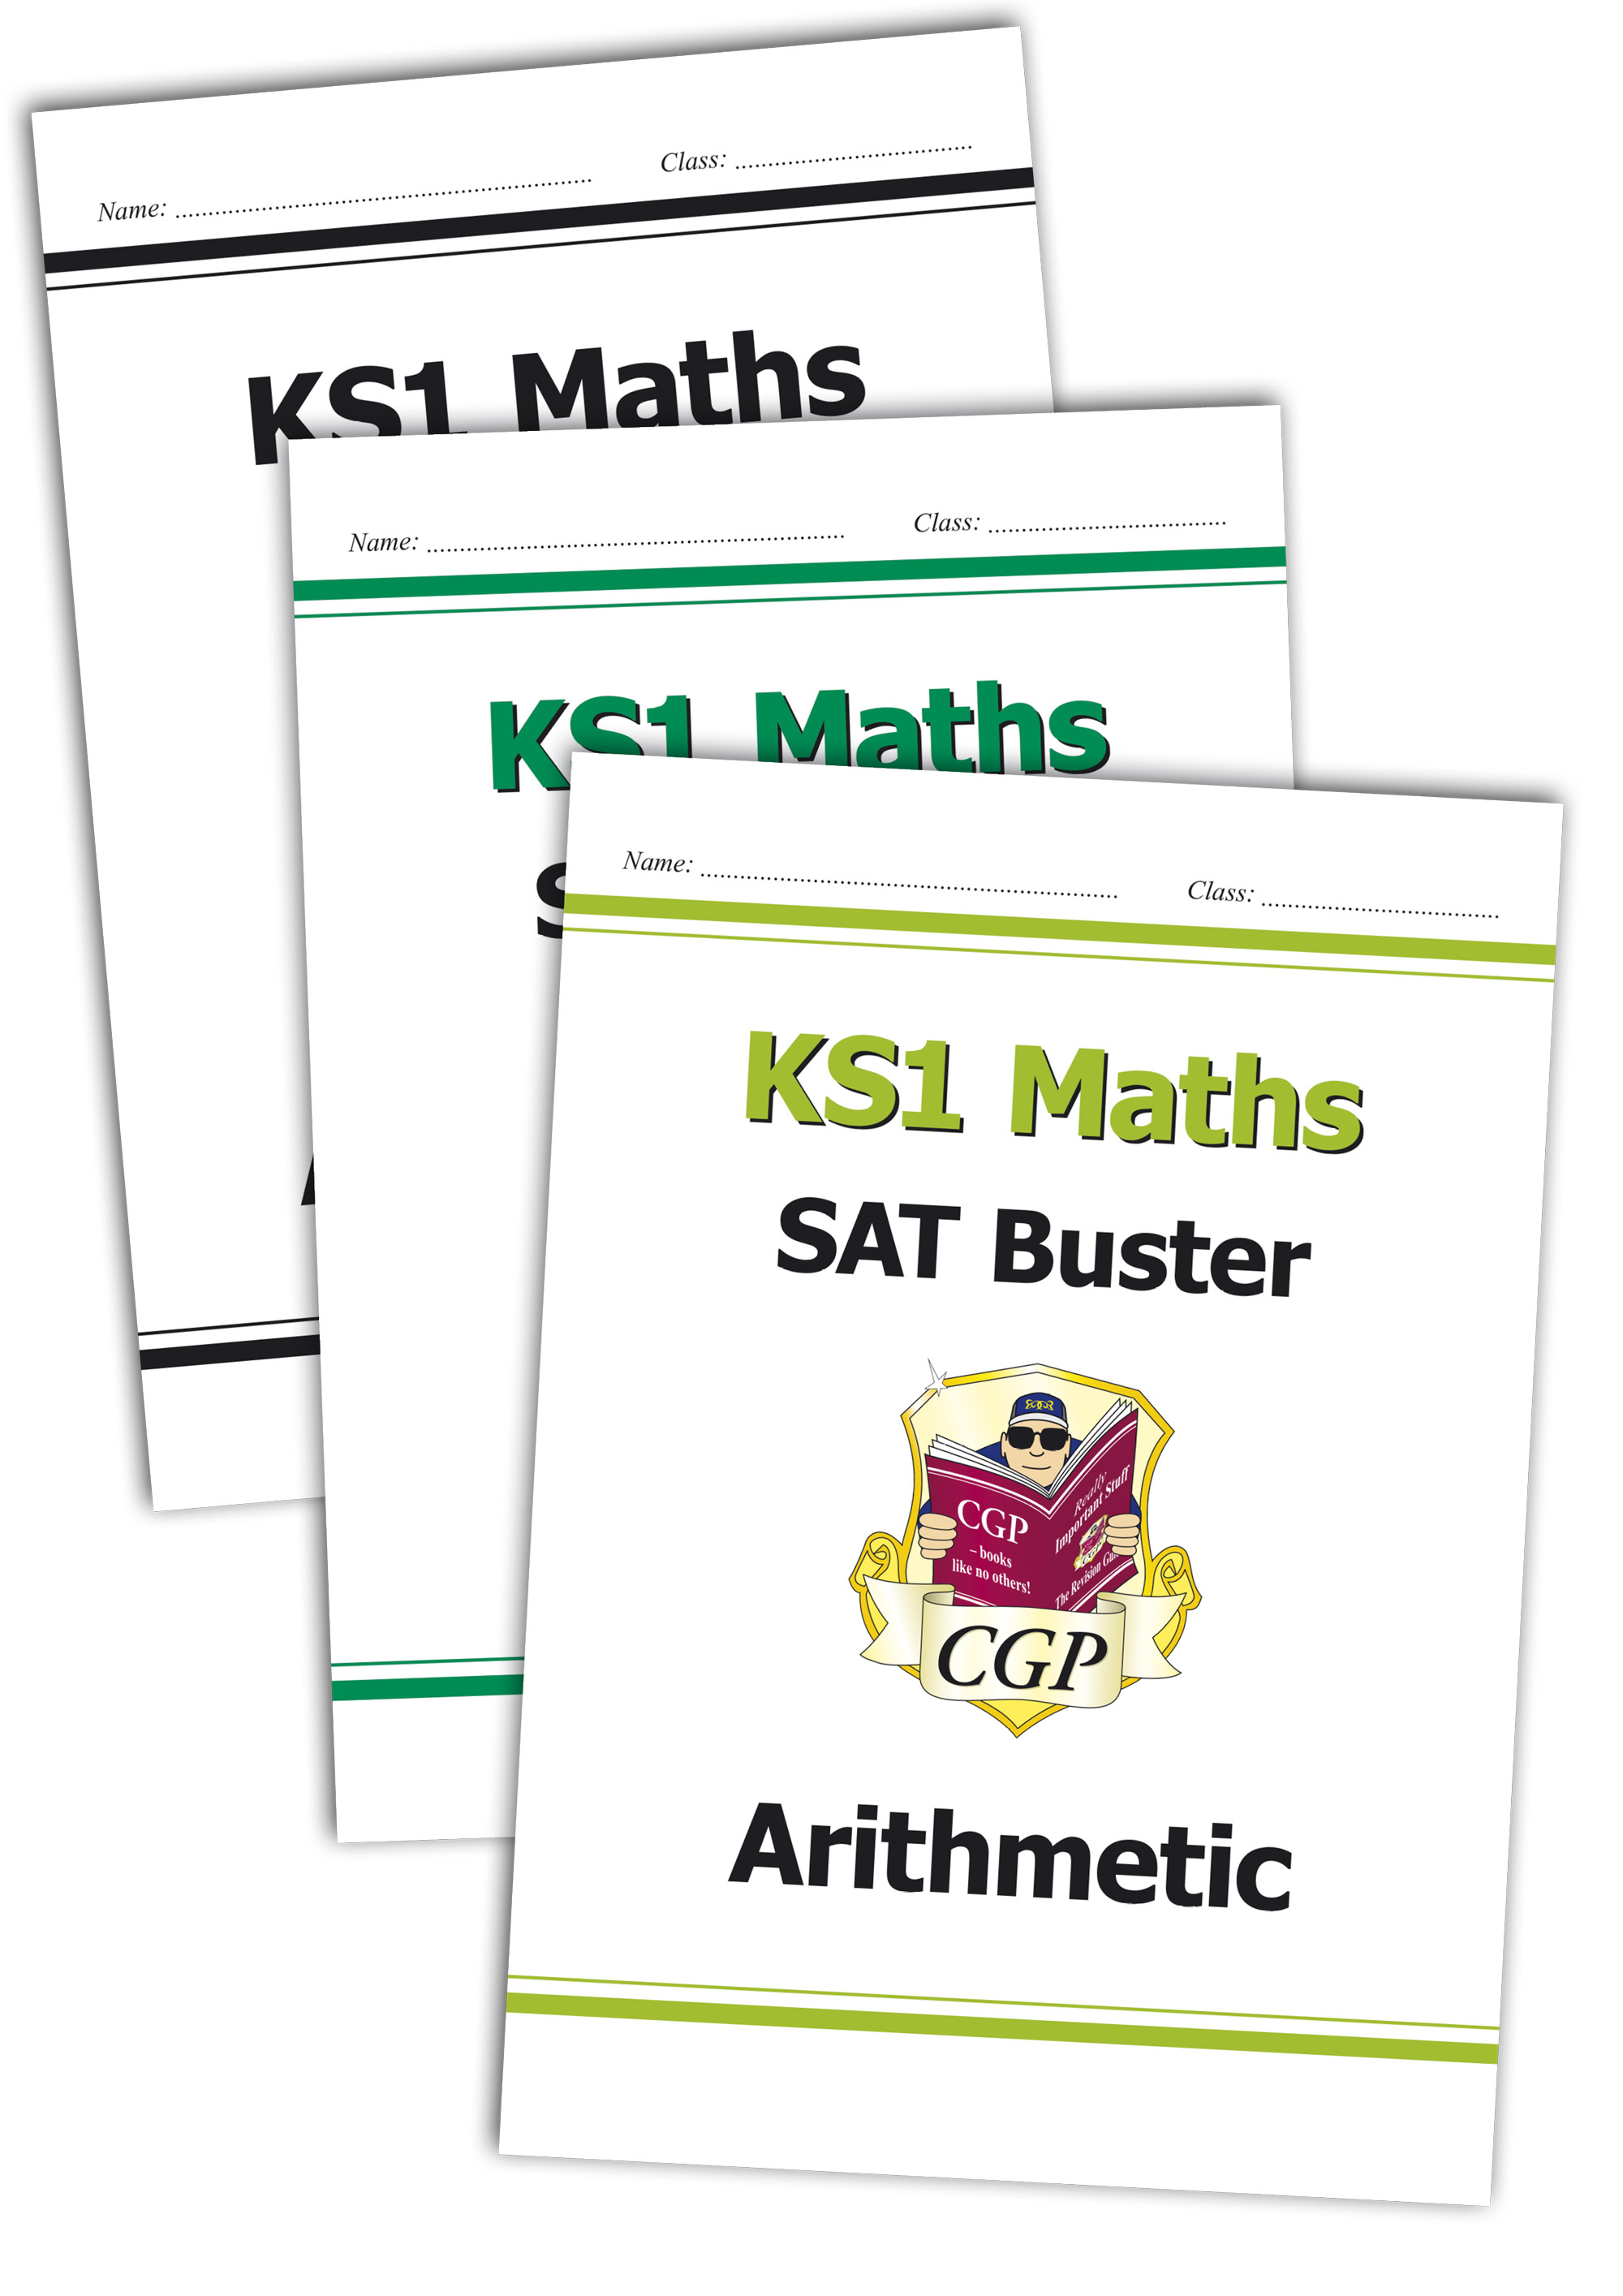 M2B11 - Complete KS1 Maths SAT Buster Bundle - incl answers (for the 2019 tests)